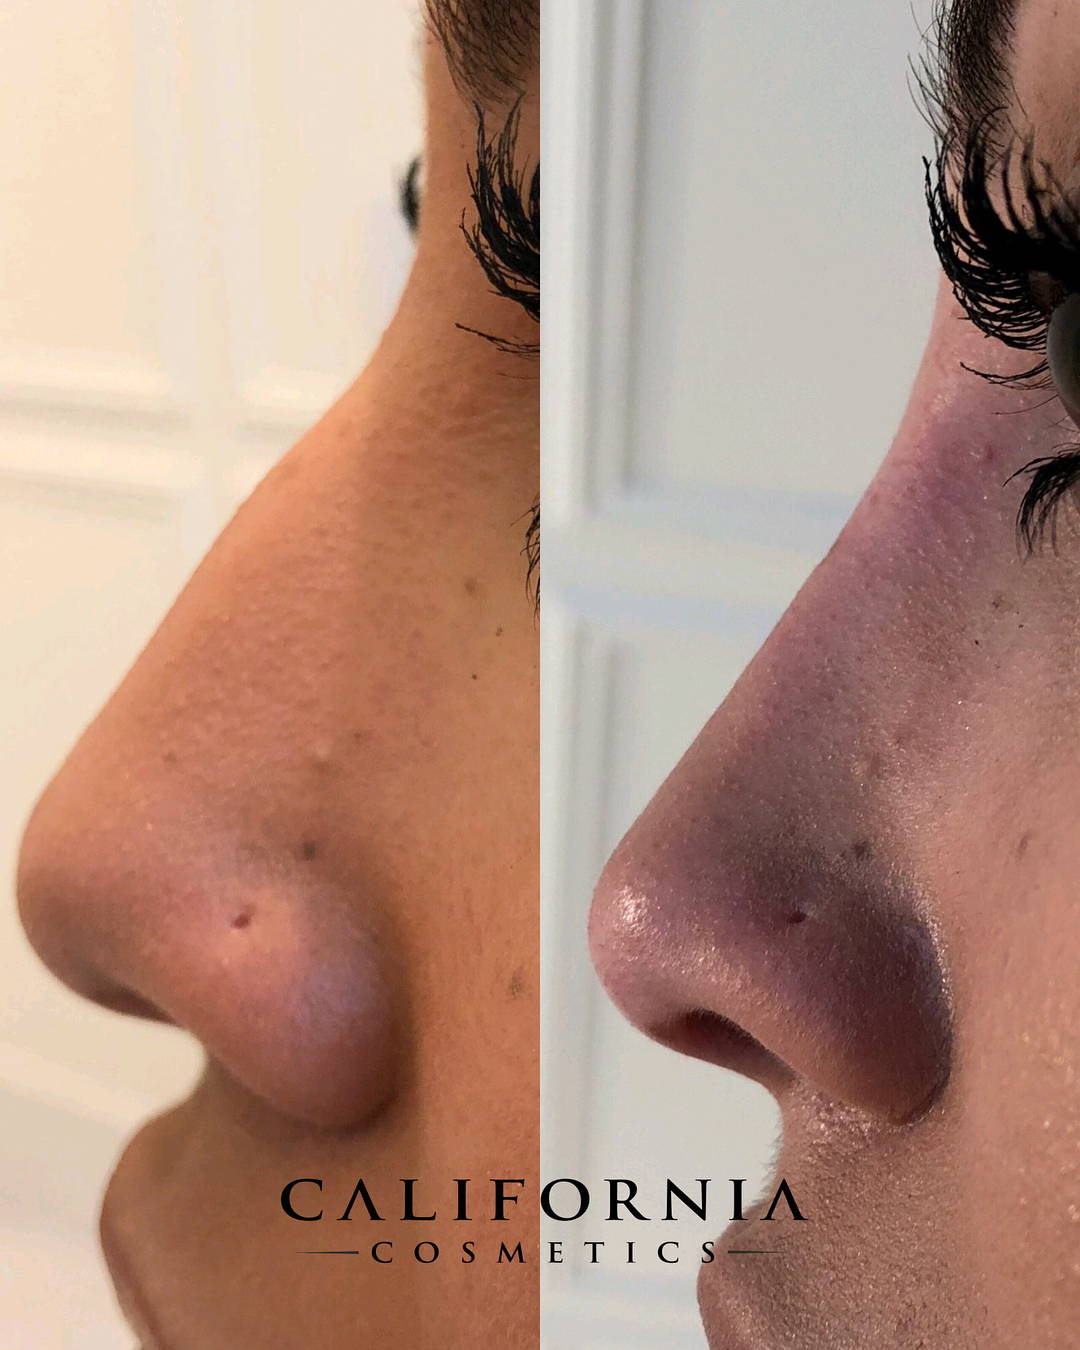 Woman's nose before and after nonsurgical nose job